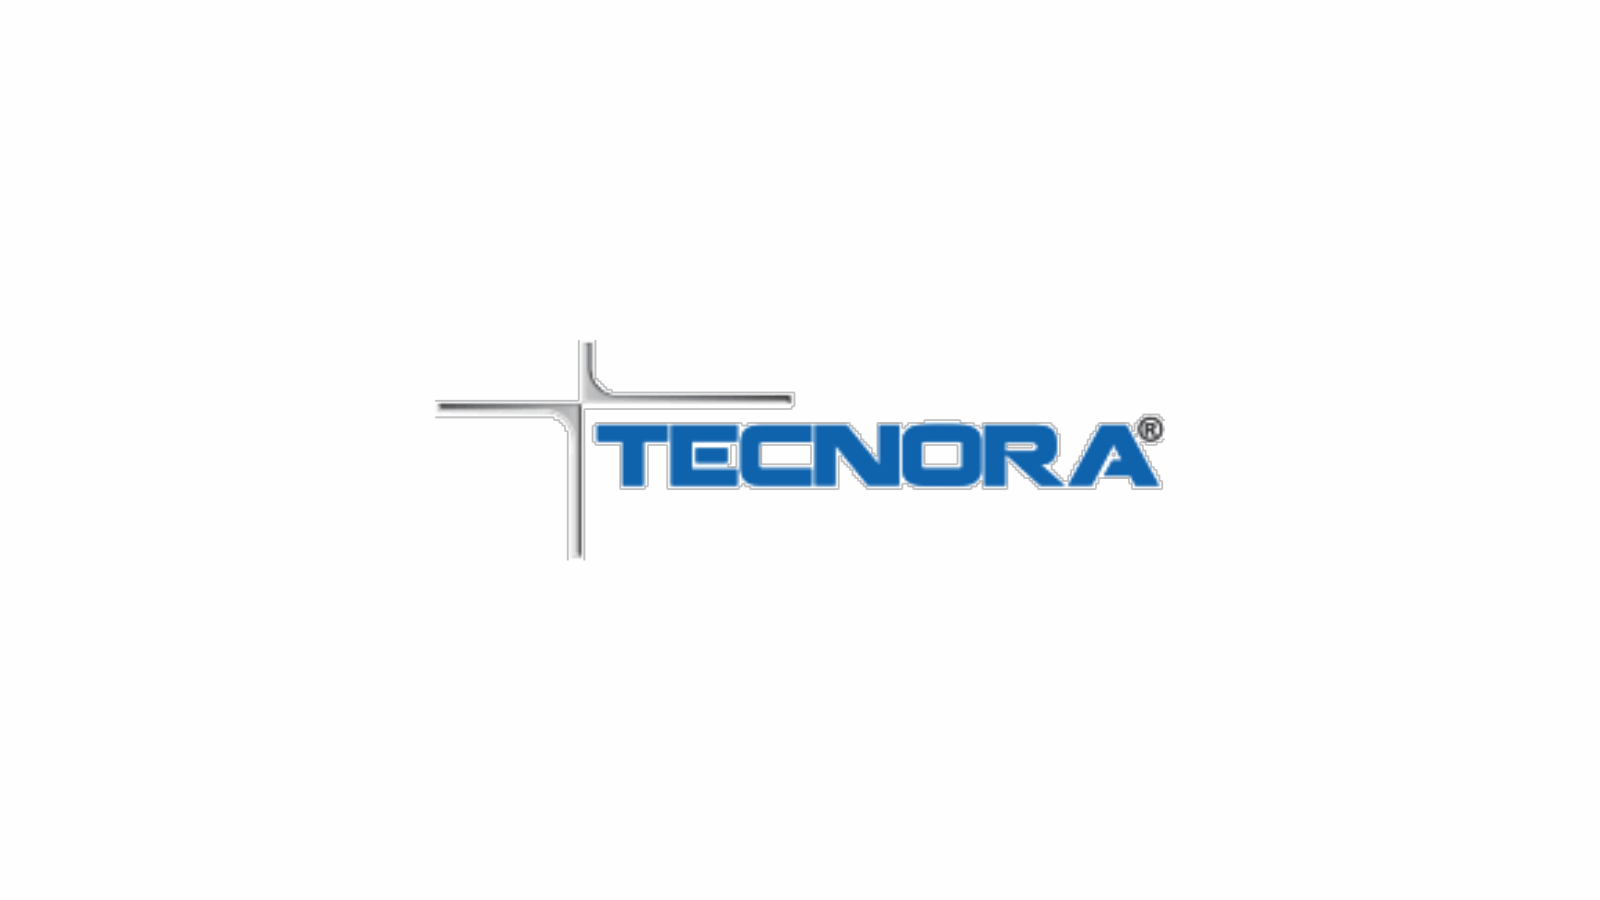 tecnora-customer-contact-center